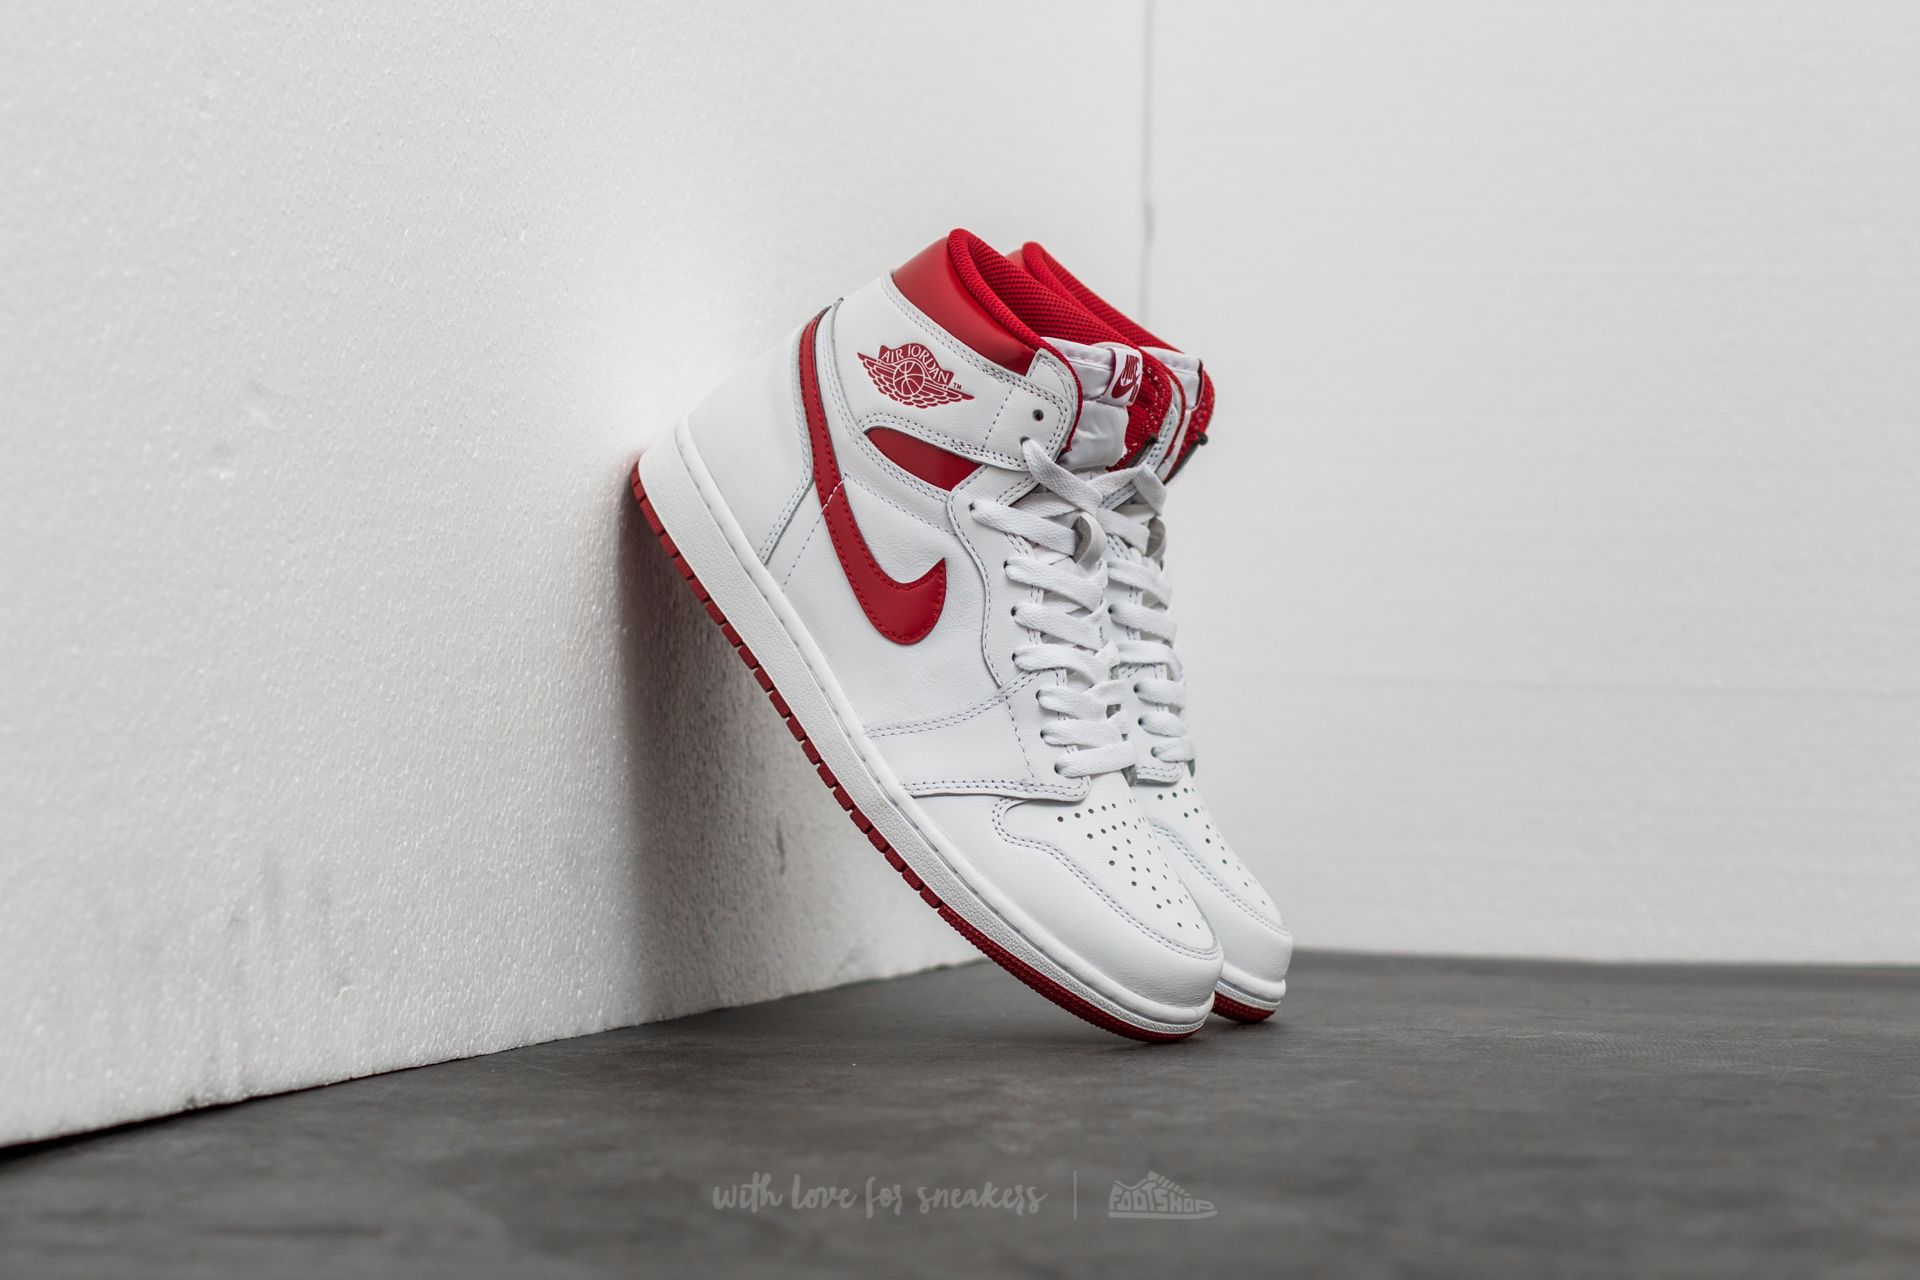 Air Jordan 1 Retro High OG 'Metallic Red' White/ Varsity Red